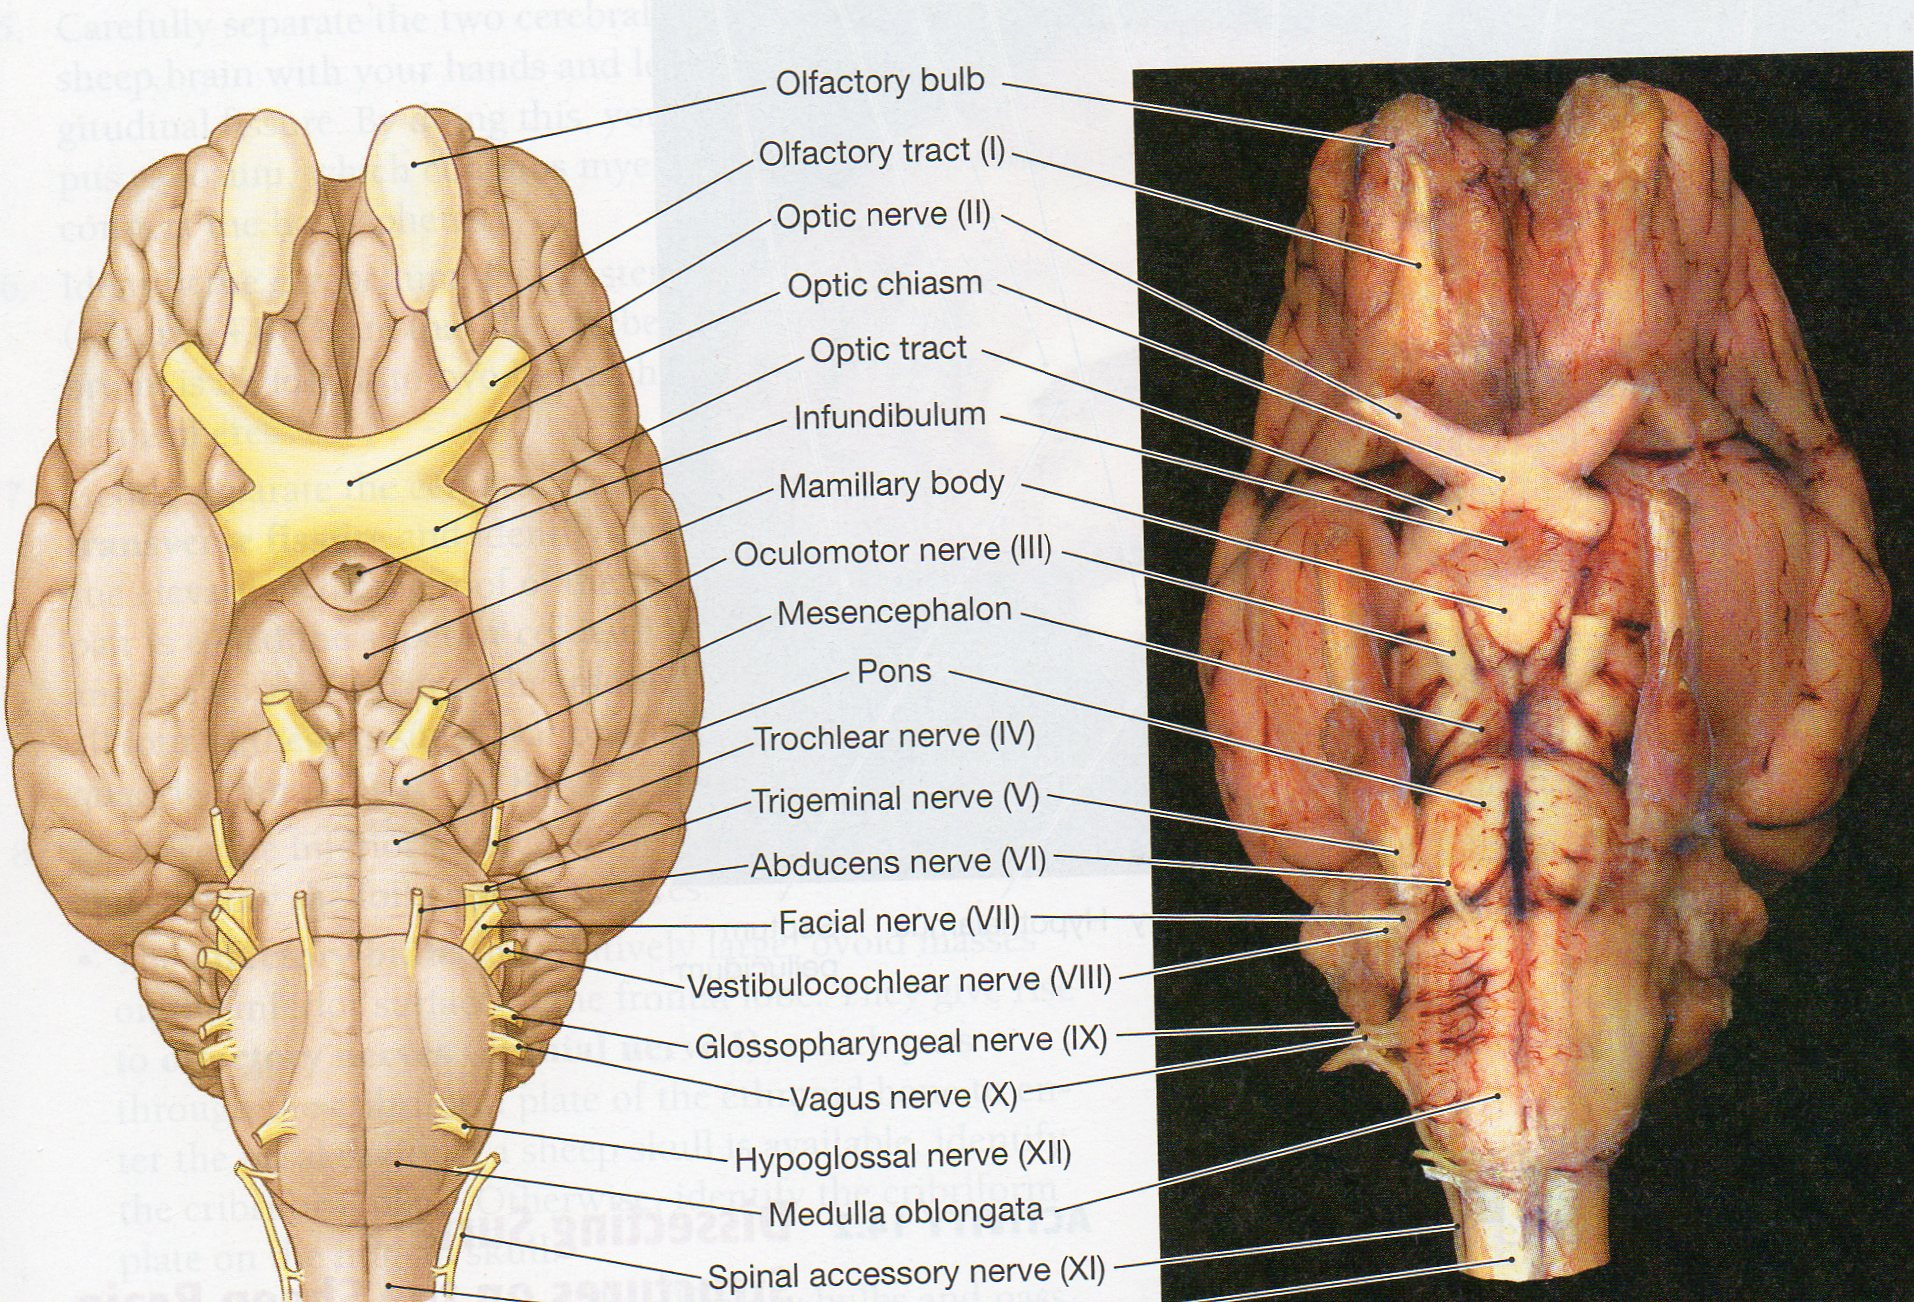 An Alternative To The Cranial Nerves Drawing Used This Manual Guide